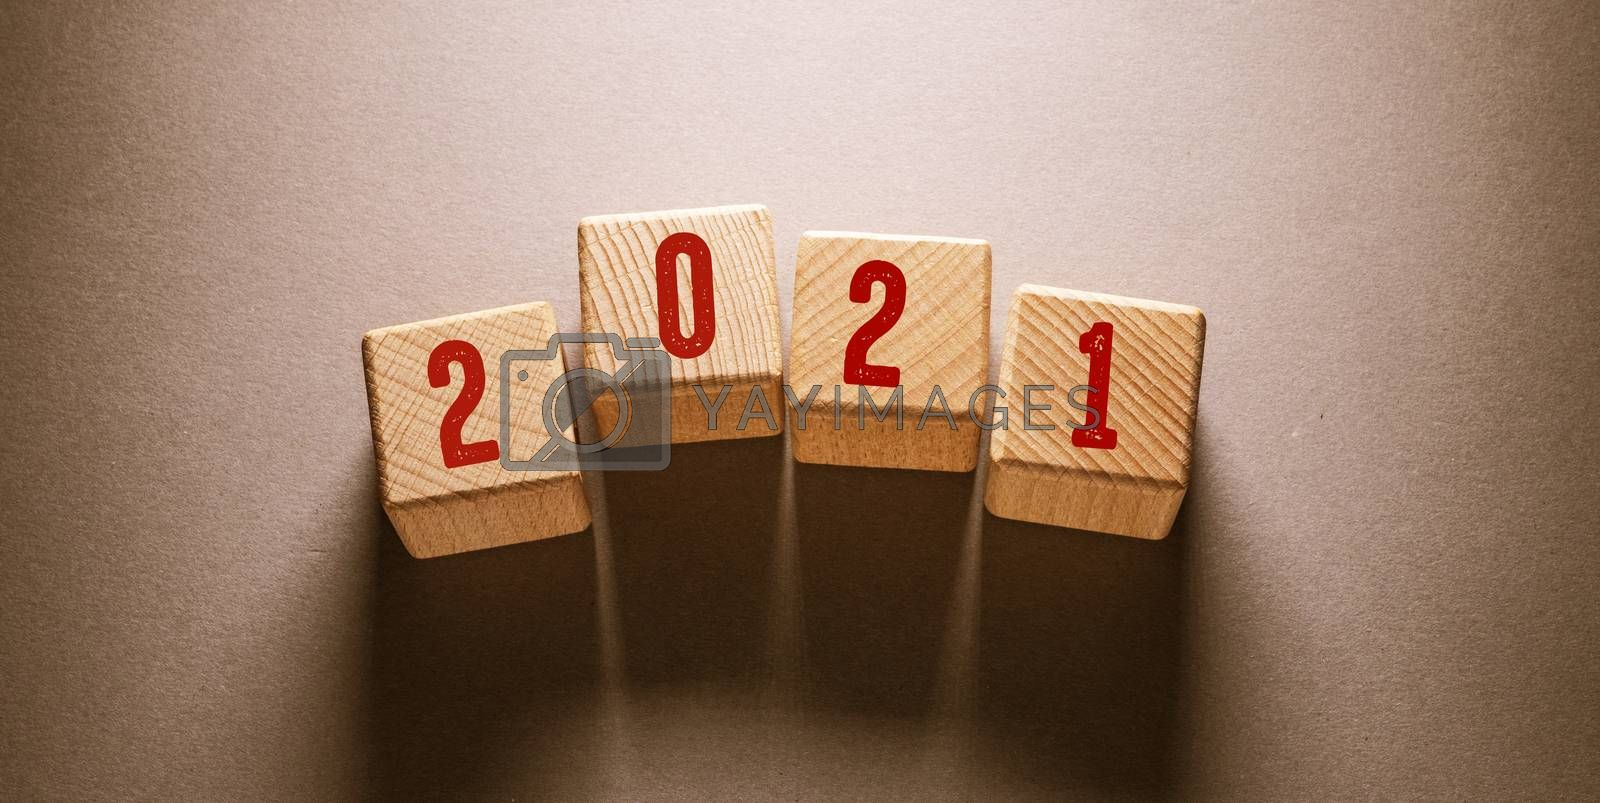 2021 Word Written on Wooden Cubes